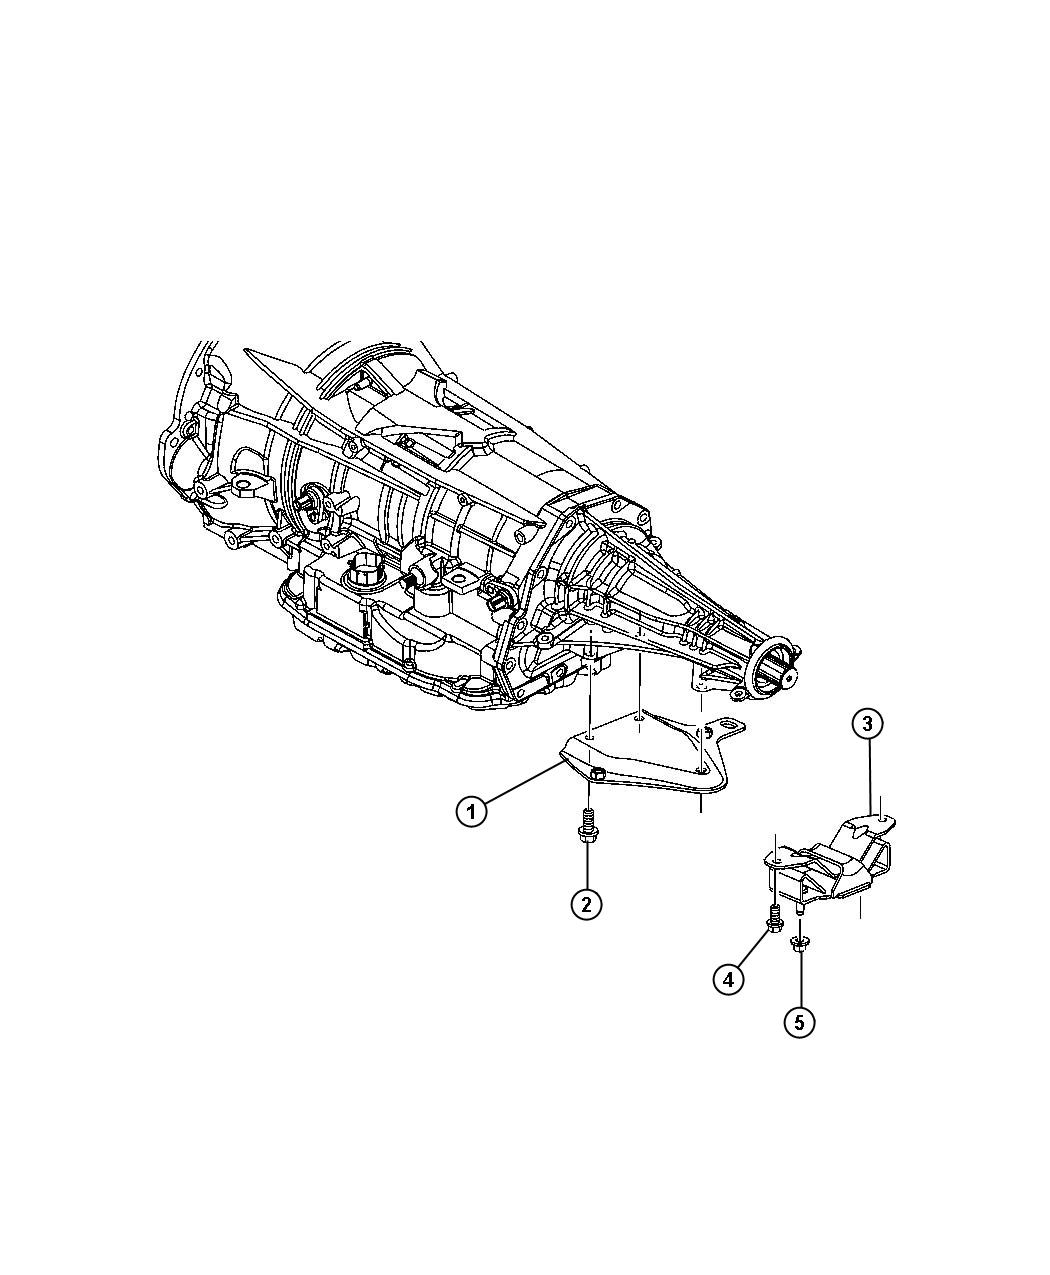 Jeep Patriot Used For Bracket And Insulator